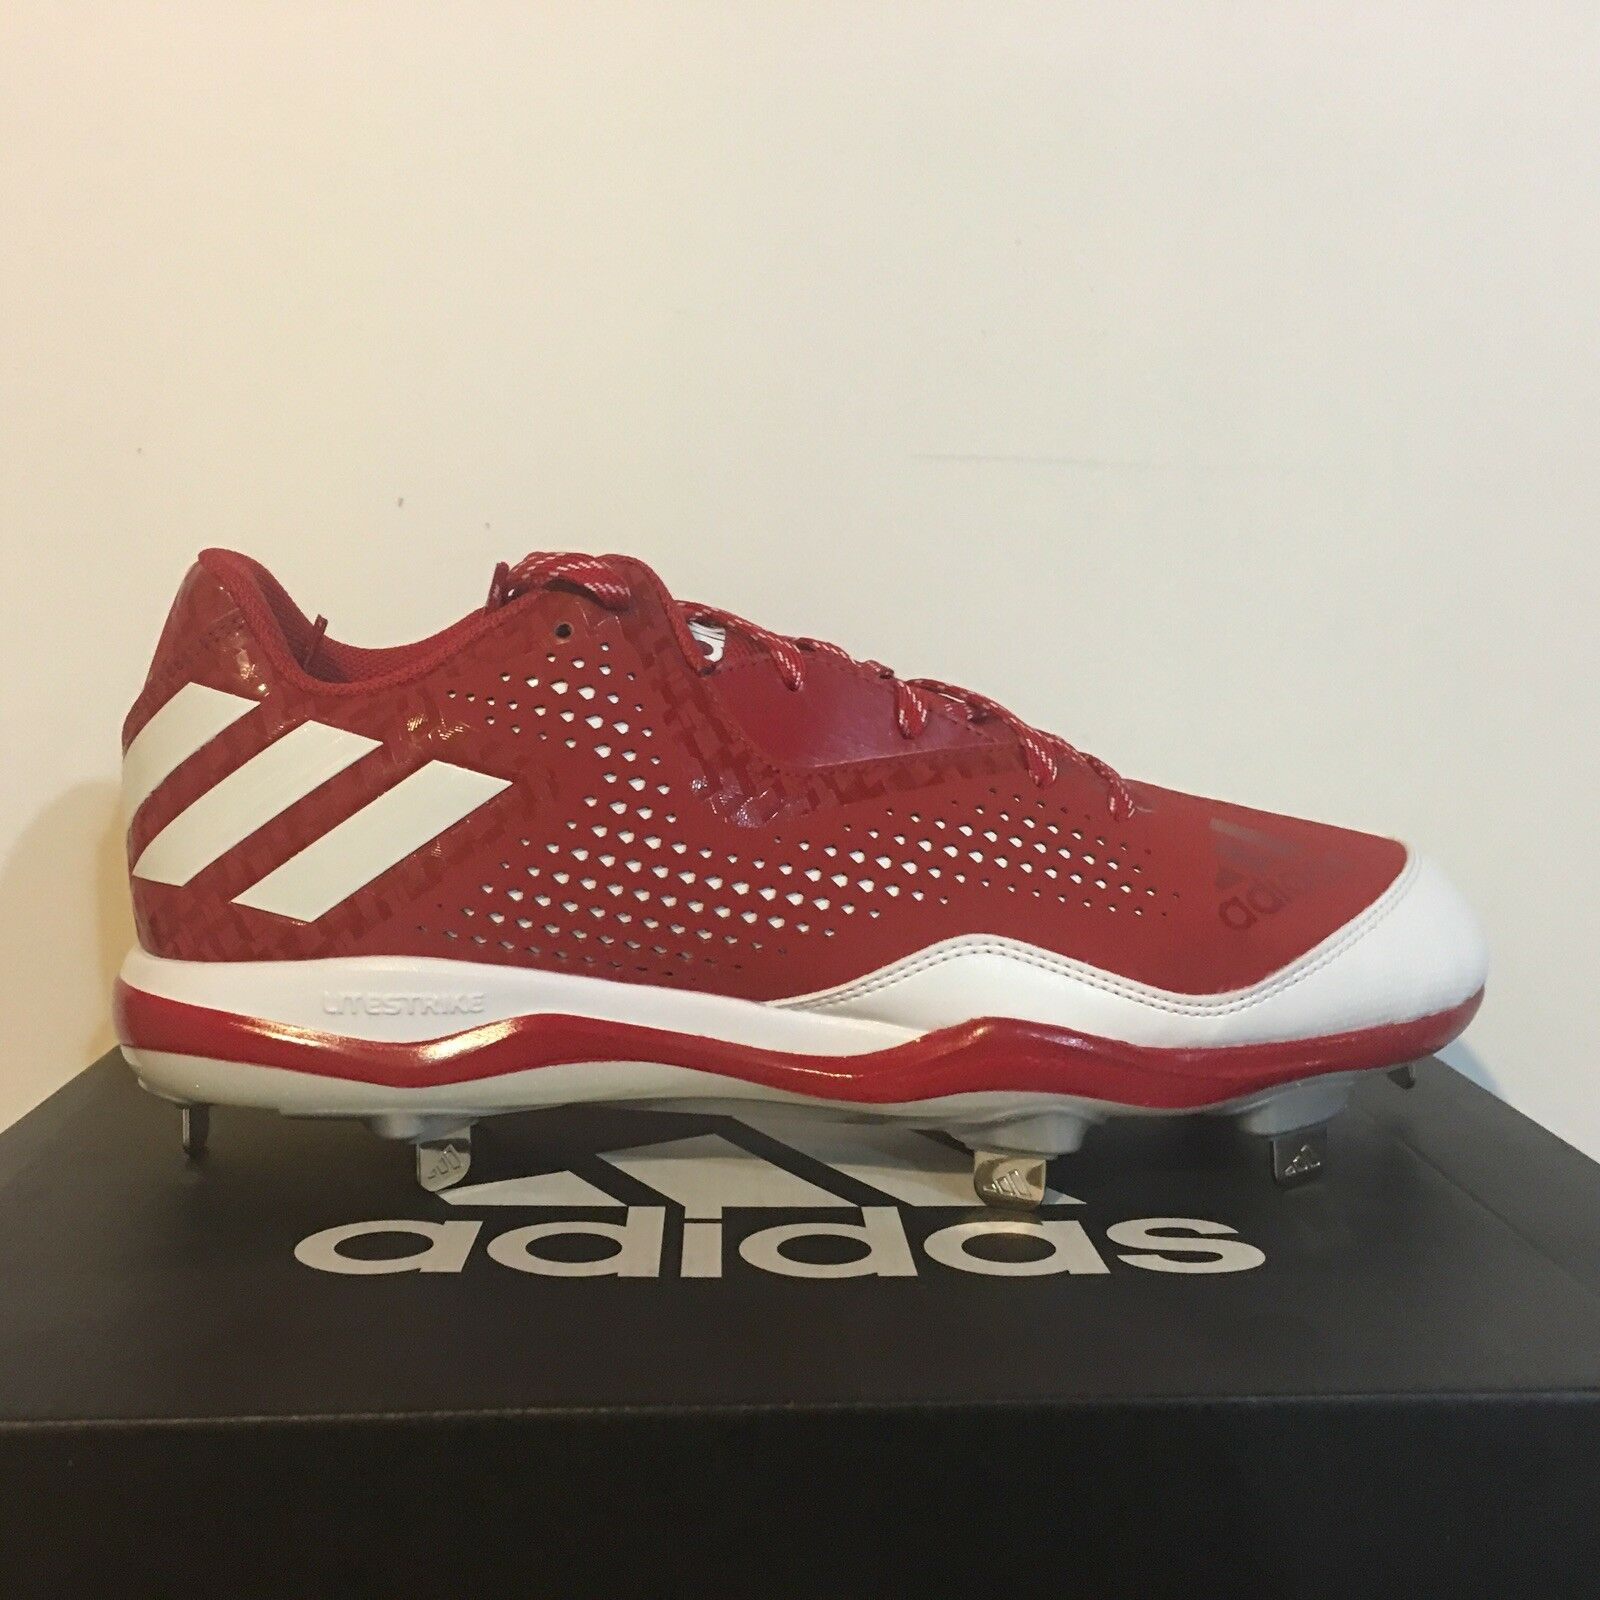 NEW Adidas Power Alley 4 low Mens Metal Baseball Cleats Size 11.5 RED